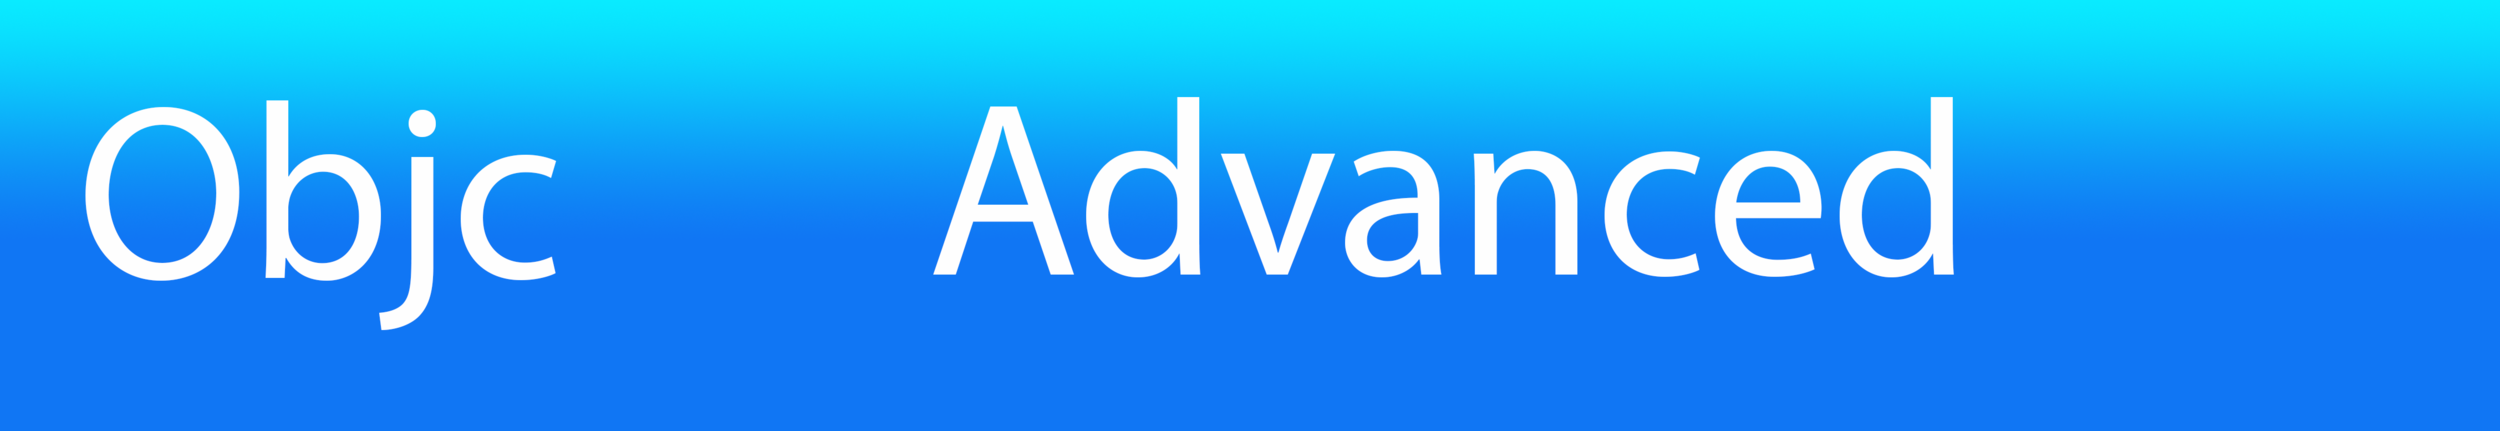 ios_product_header5.png